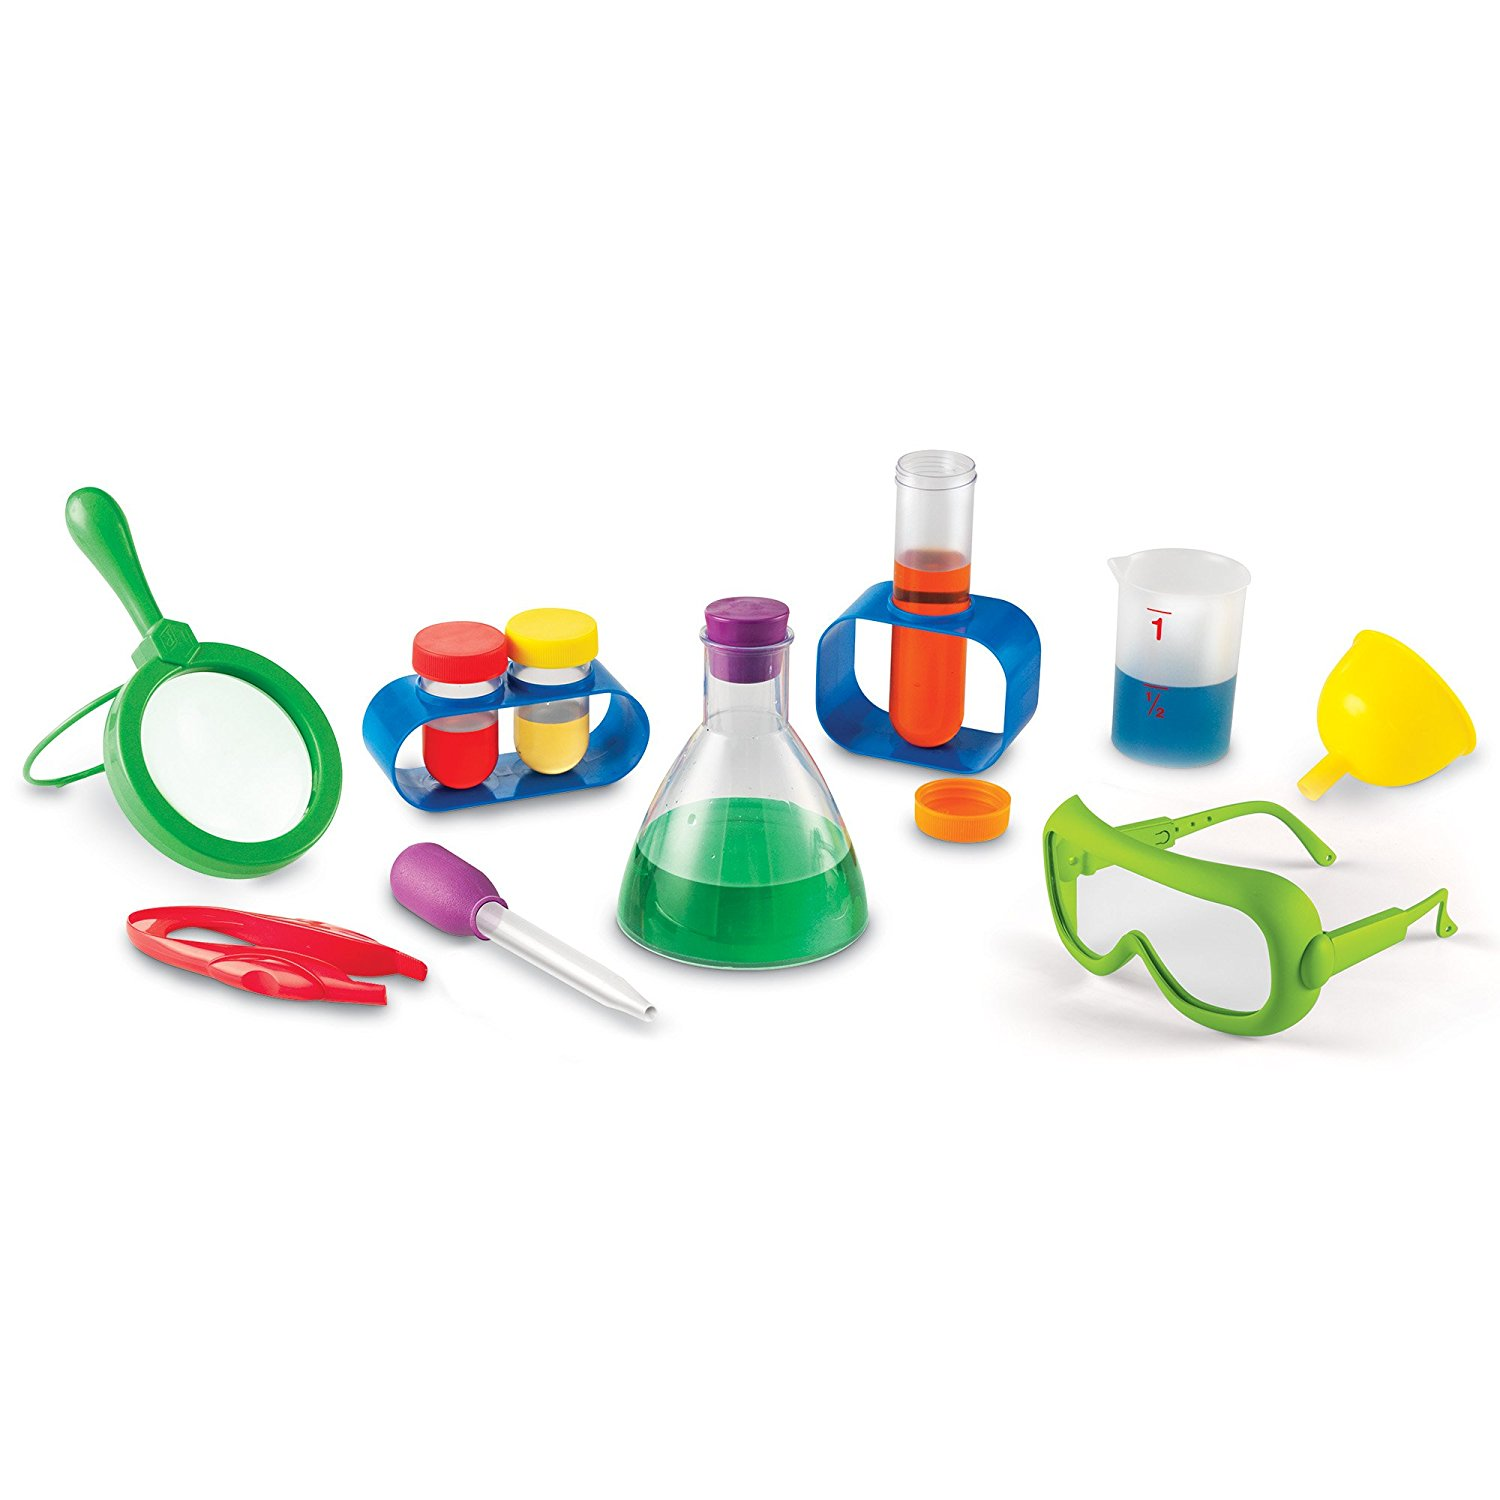 Experiments Instruments Measurement: Best Science & Math Toys For Preschoolers